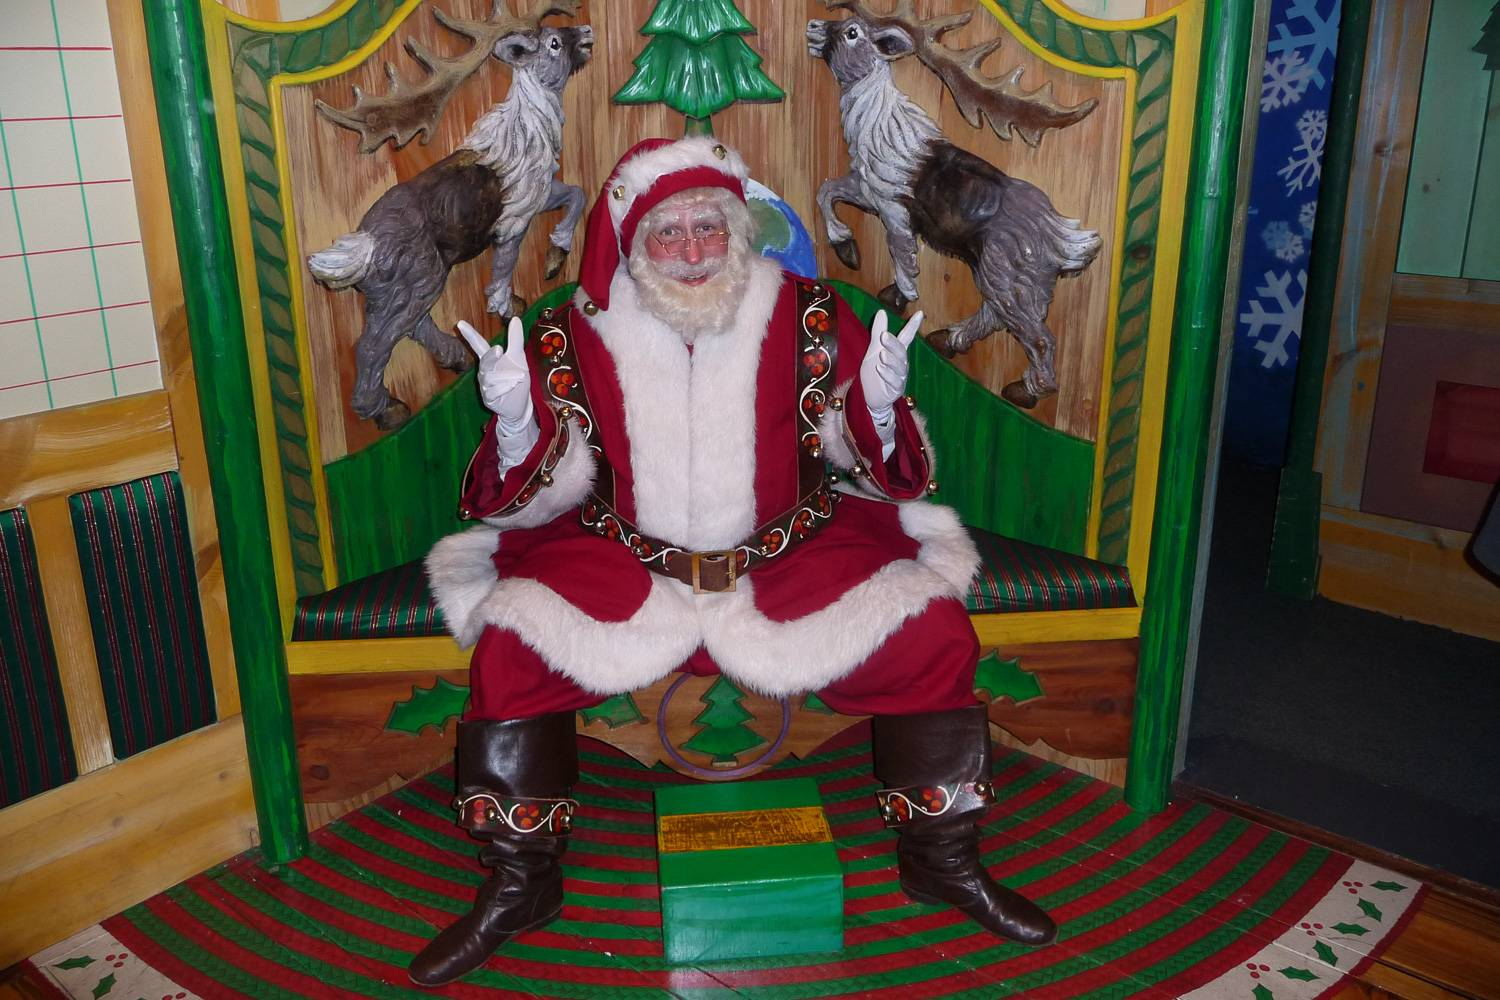 Image of Santa Claus waiting to greet visitors to Macy's flagship store in Herald Square, New York City.